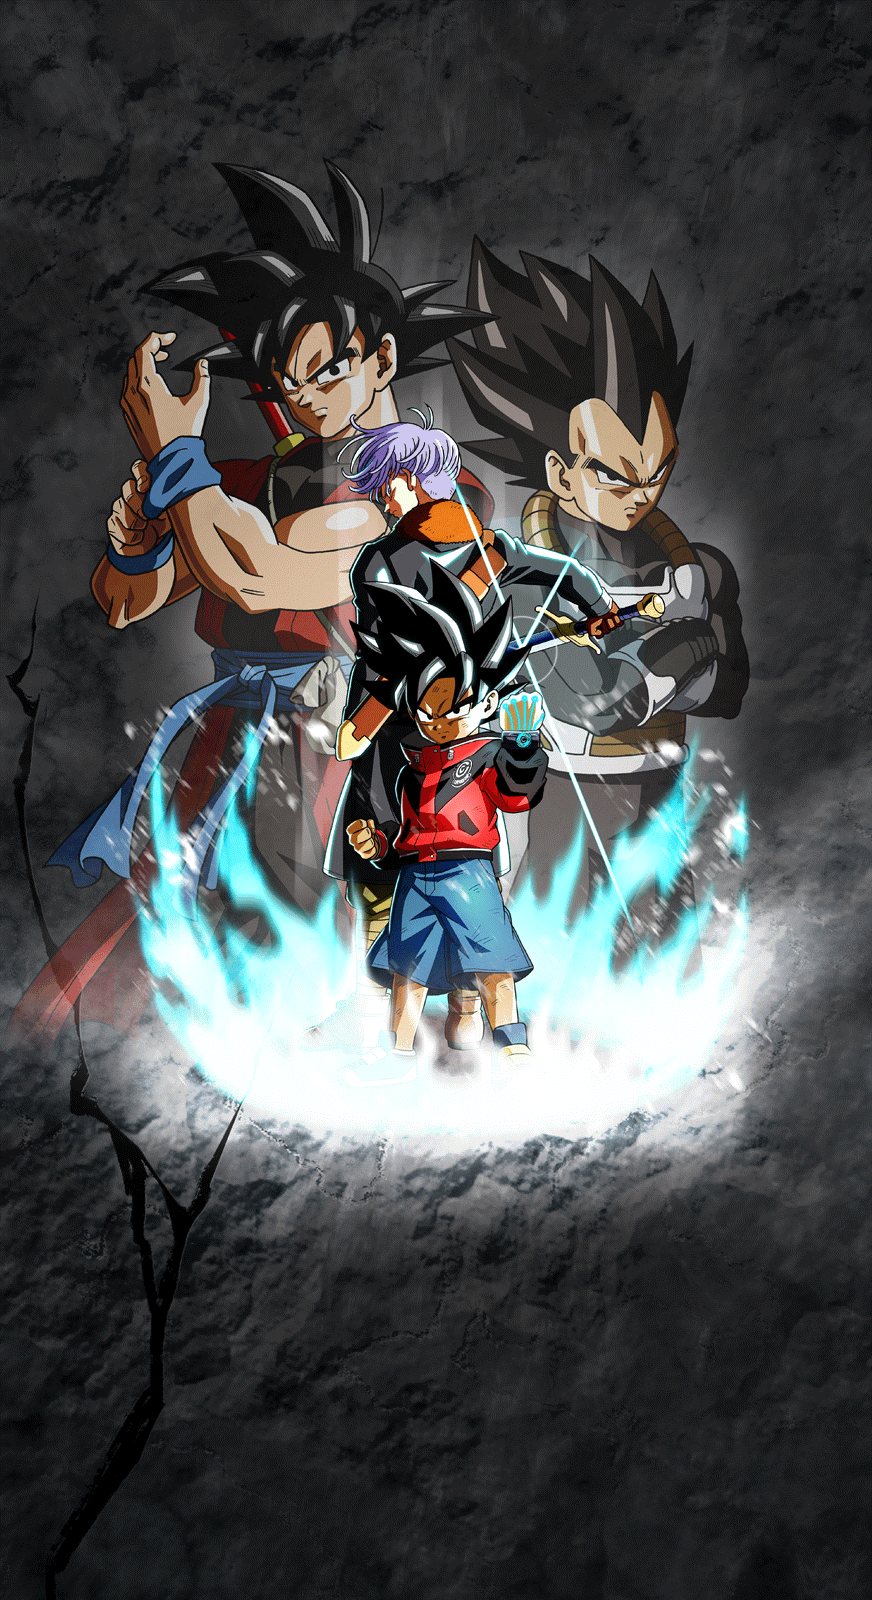 SDBH World Mission BG [Dokkan Battle] by maxiuchiha22 on DeviantArt